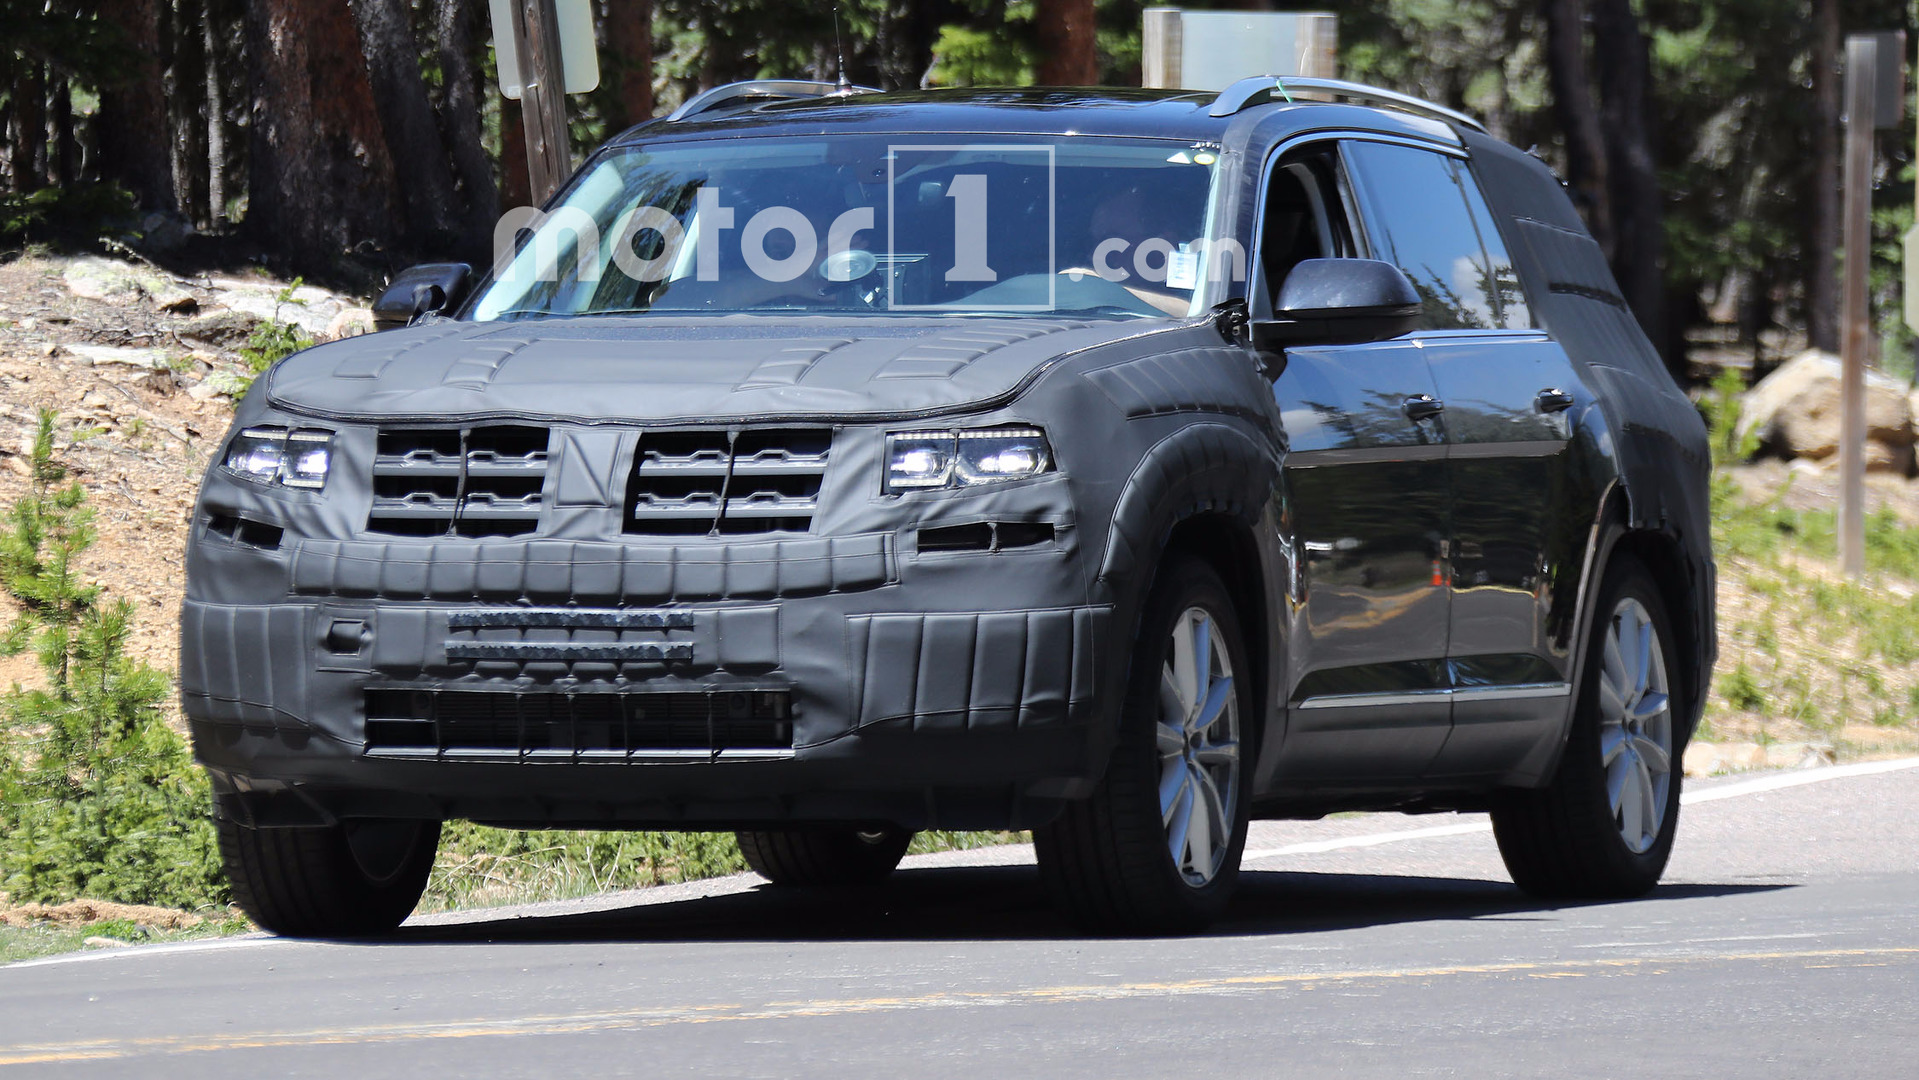 VW's new SUV to be called Teramont?